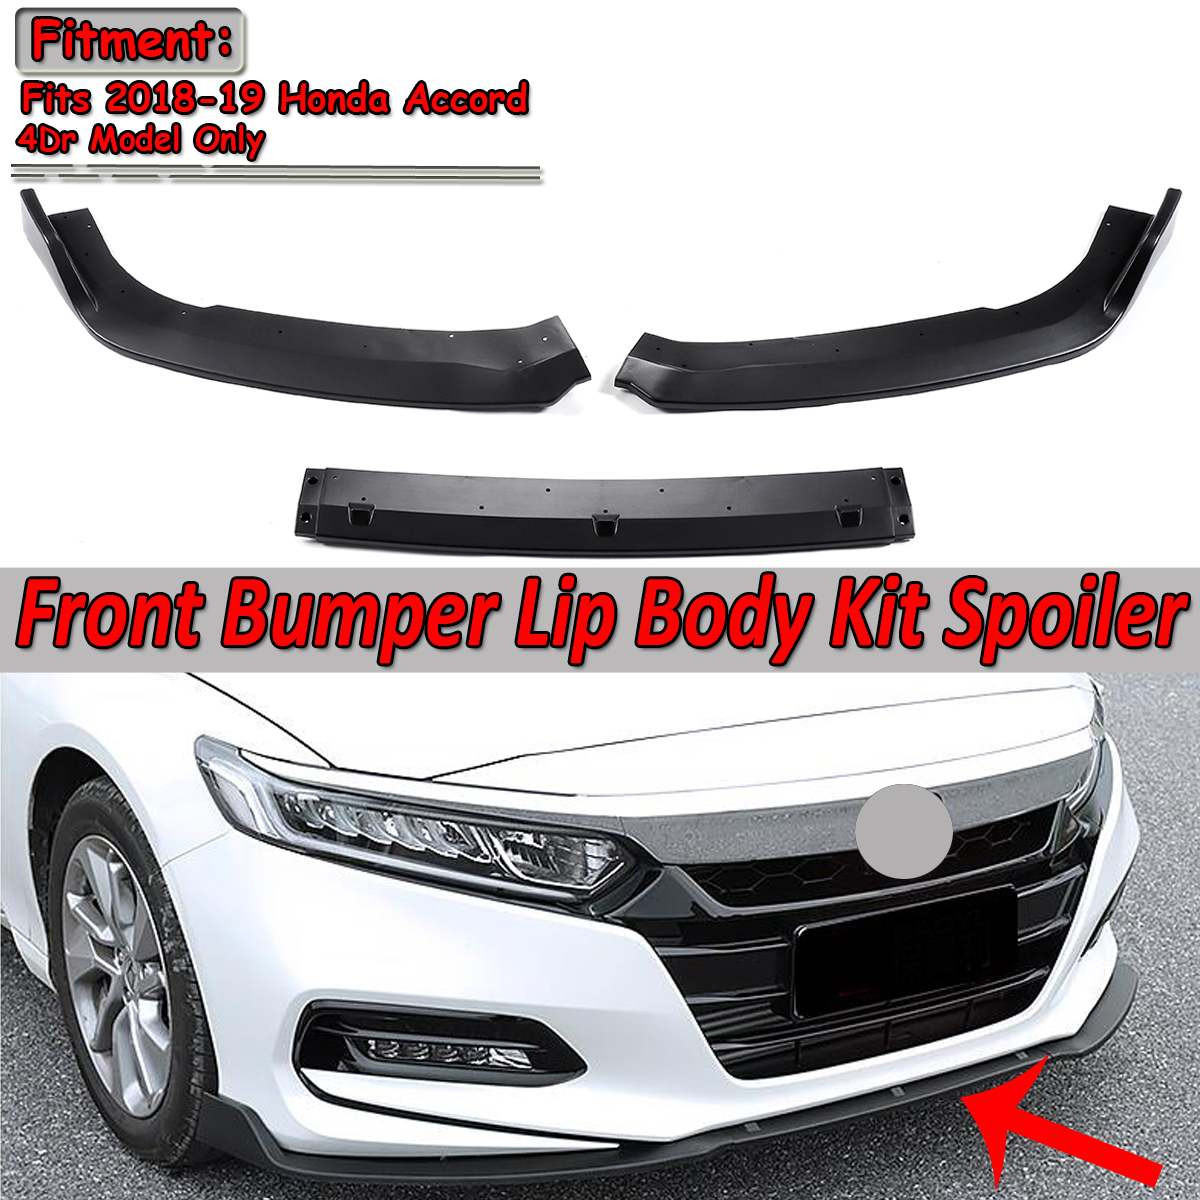 A-Premium Steering Knuckle Compatible with Acura TSX 2009-2014 Honda Accord 2008-2012 Front Passenger Side